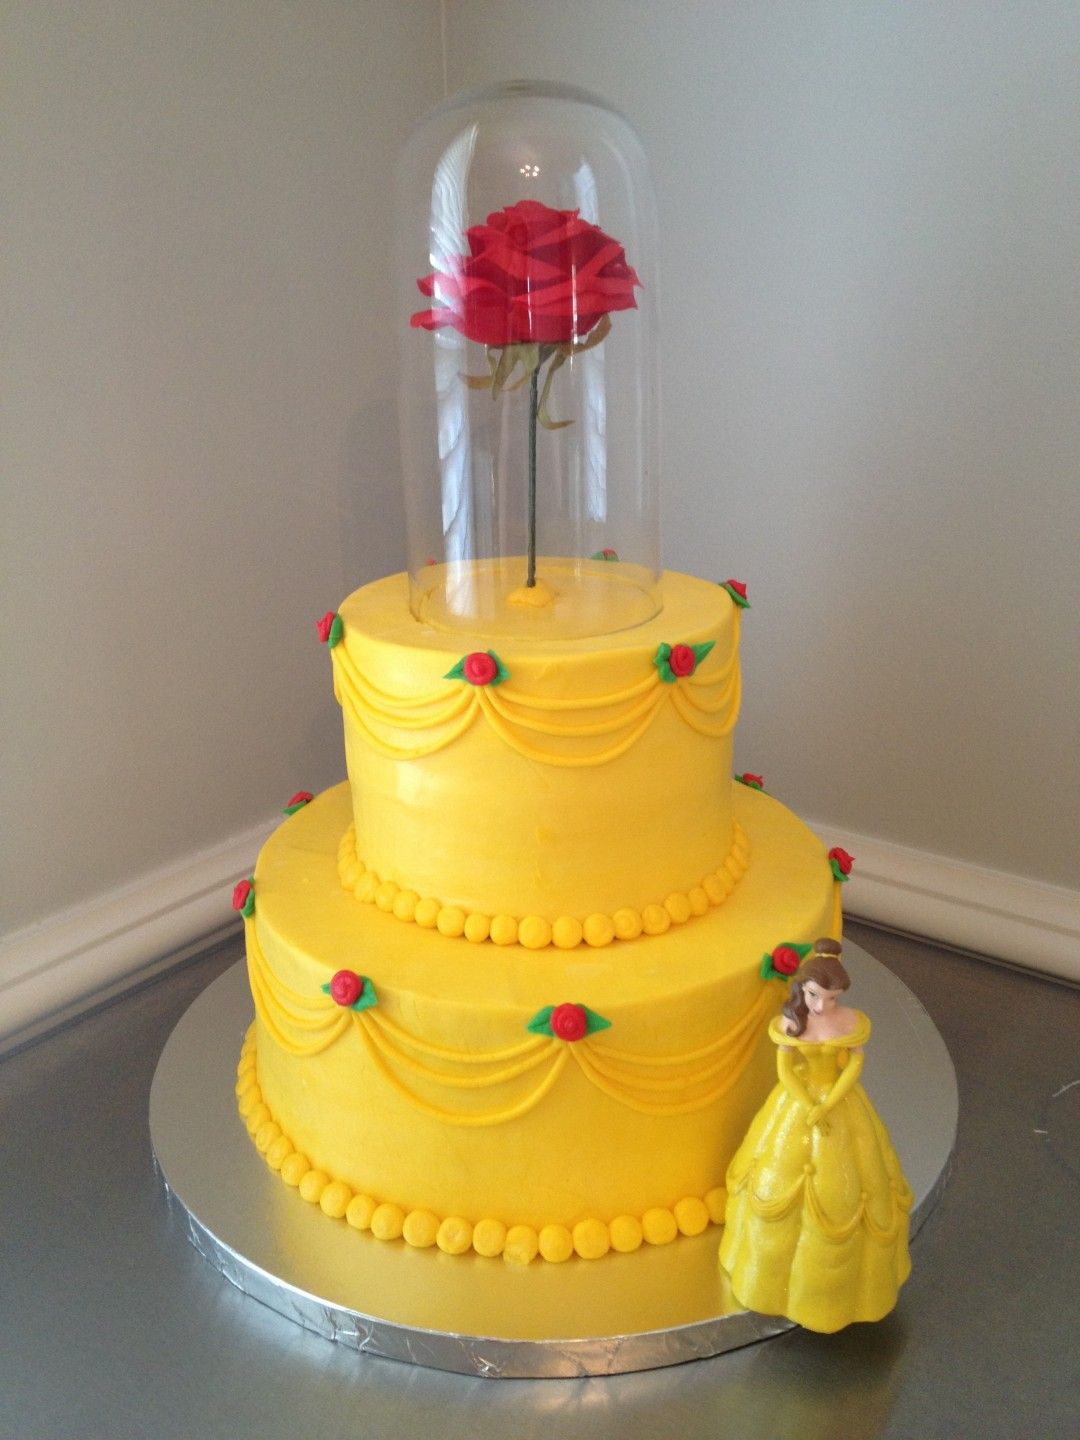 Beauty and the Beast cake Food Pinterest Beast Cake and Birthdays